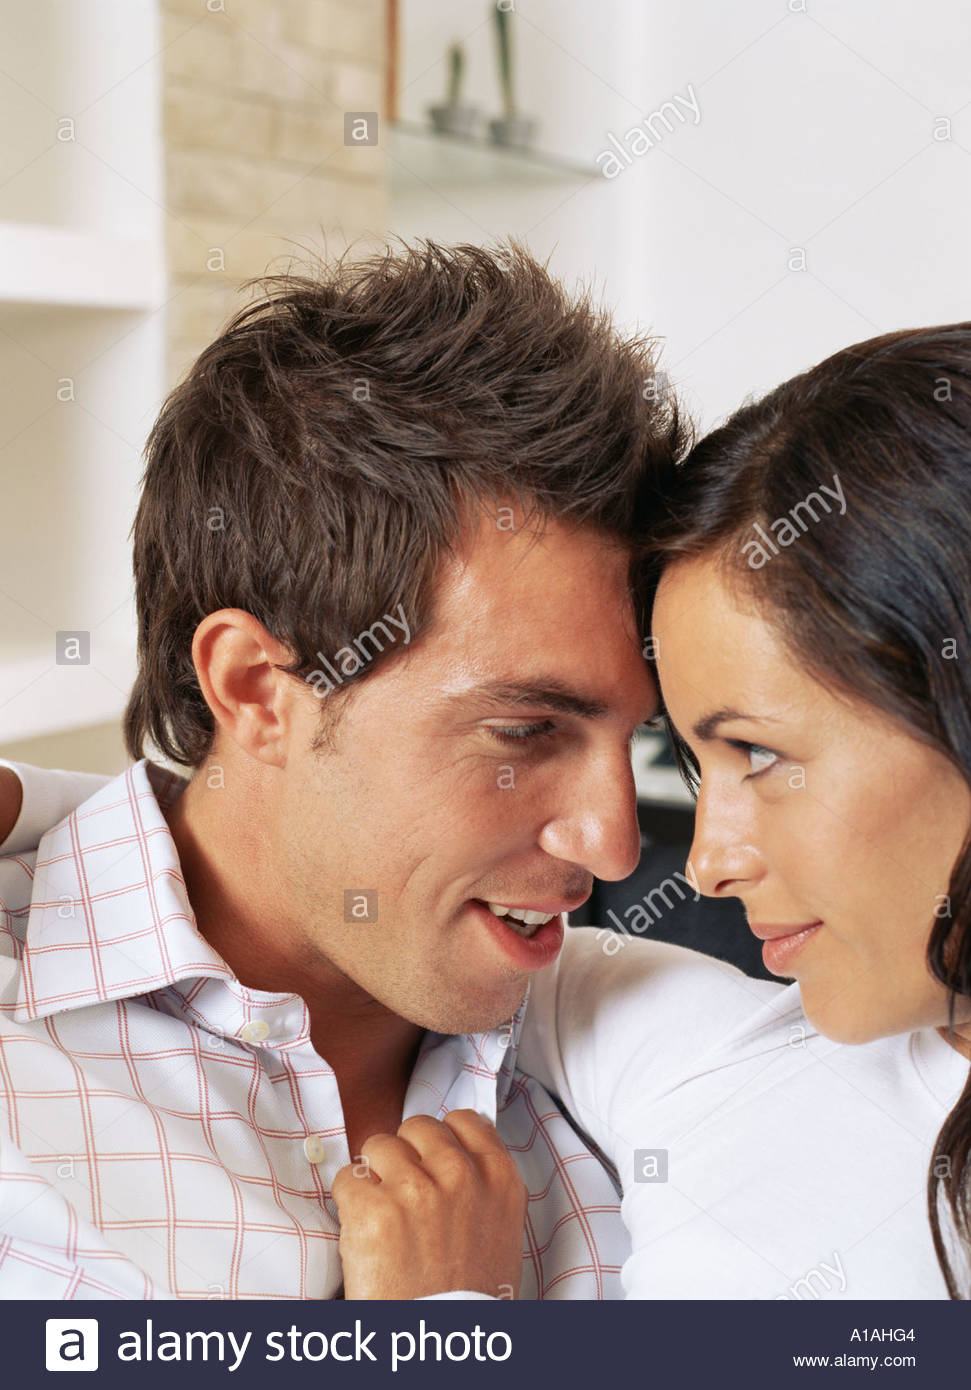 Portrait of an intimate couple - Stock Image